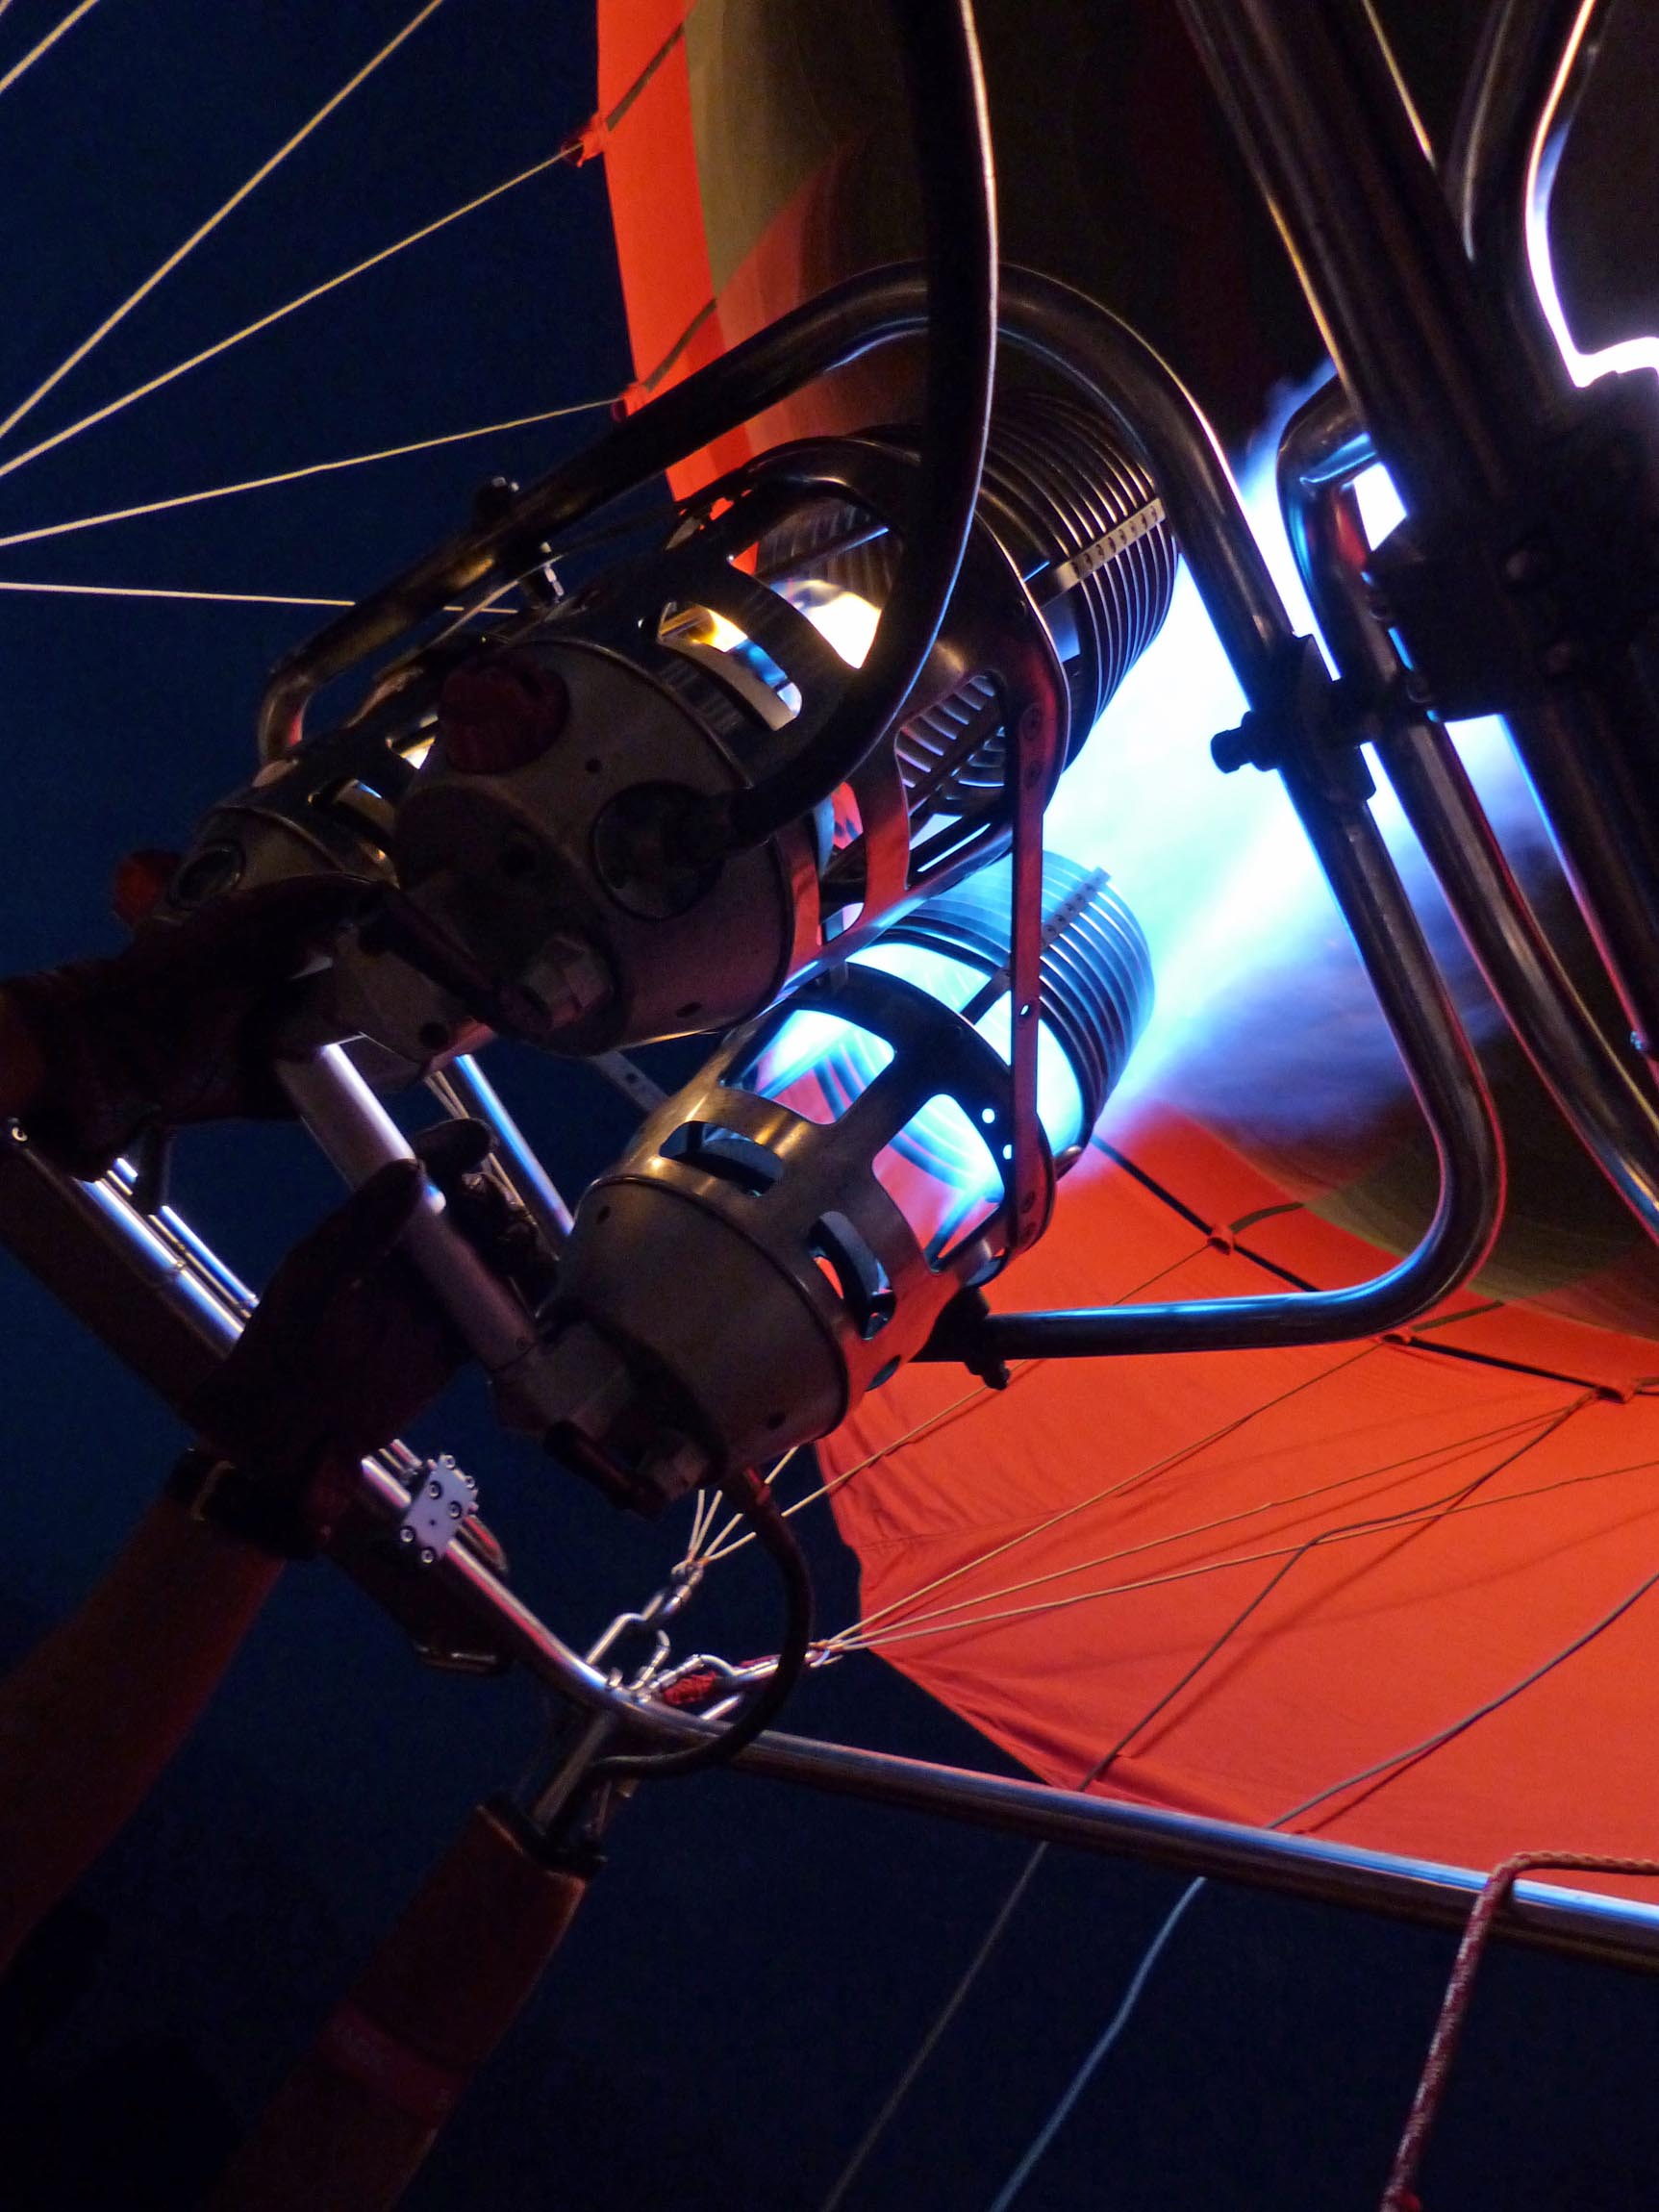 Looking up at the flame inflating a hot air balloon -